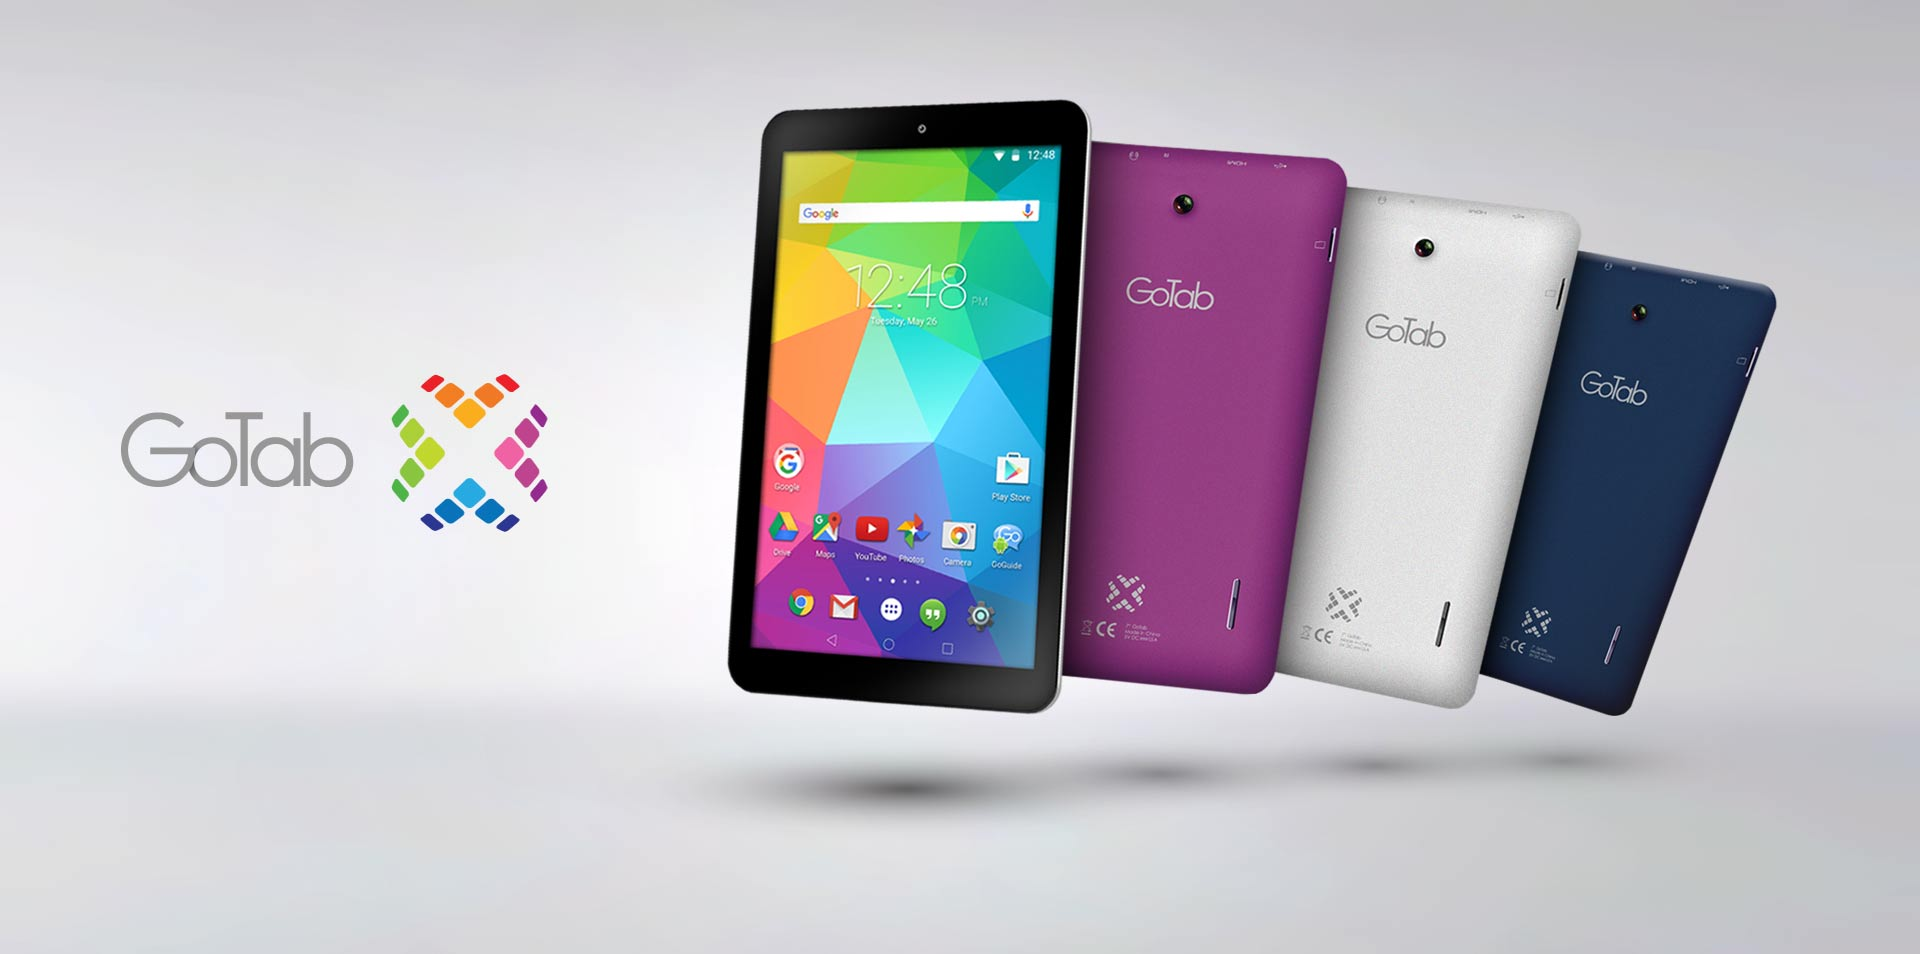 GoTab-X-Android-Lollipop-Tablet-GT7X-Aluminium-Silver-Purple-Blue-Metal-Buy-Best-Cheap-Tablet